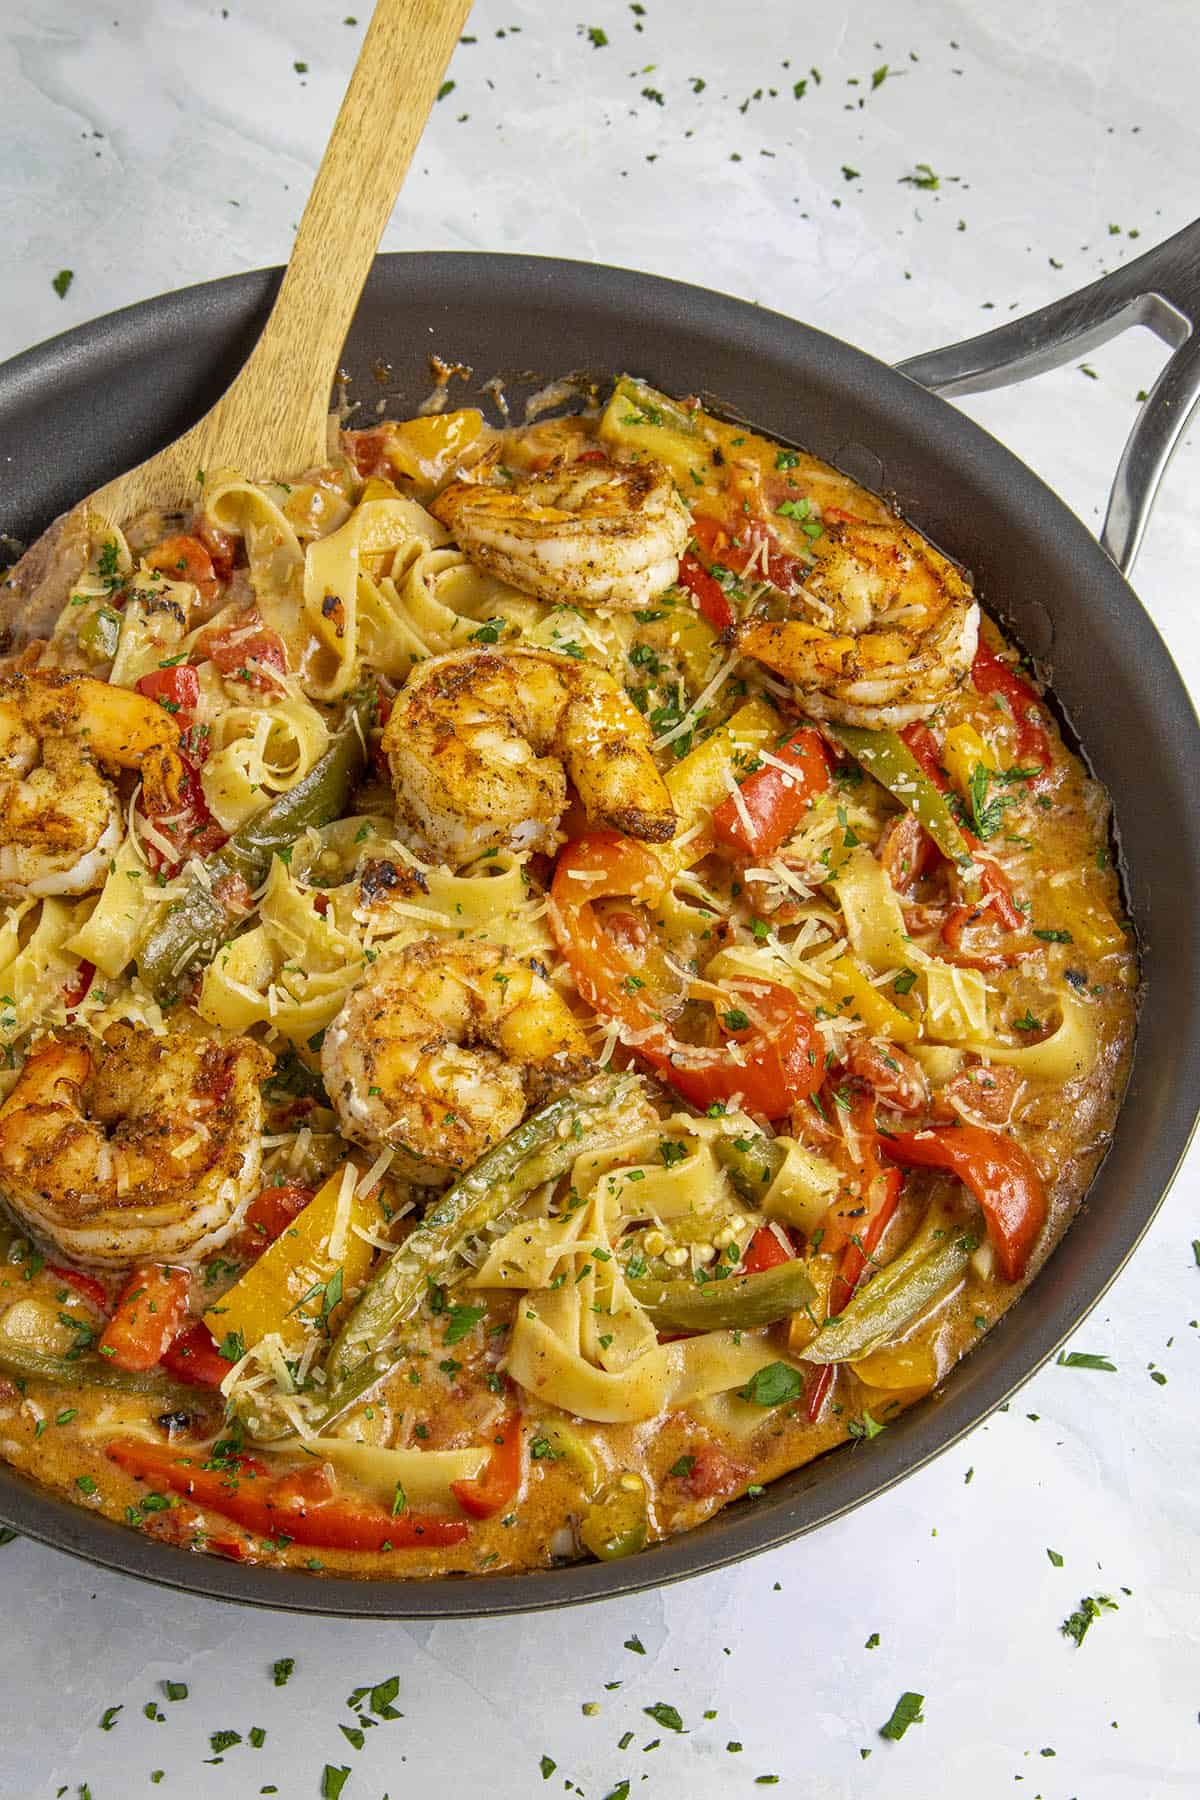 Rasta Pasta with shrimp in a pan, ready to serve